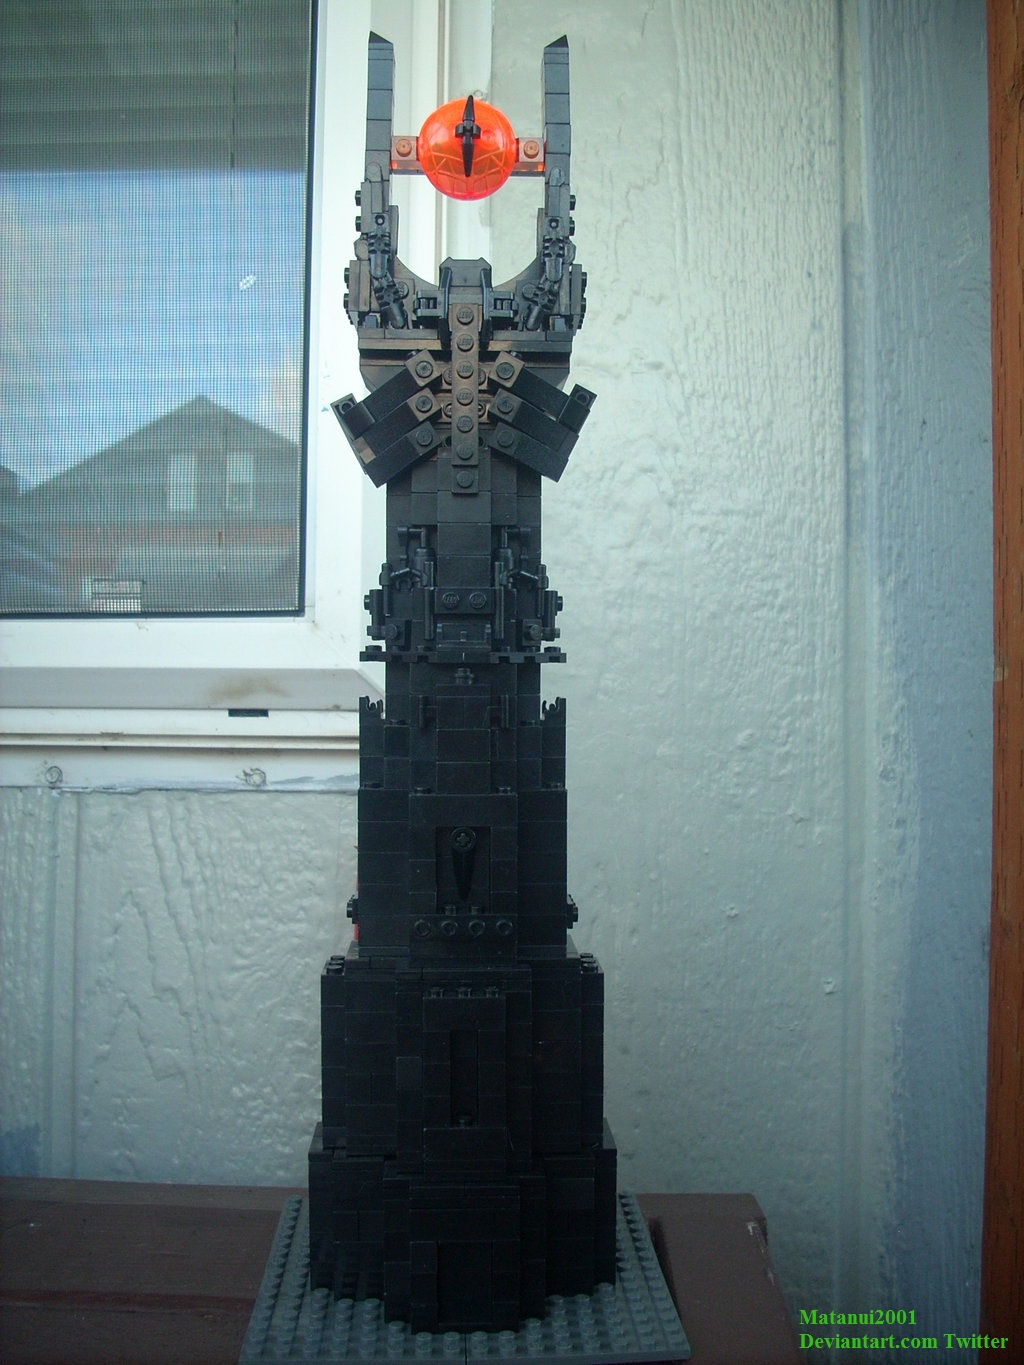 The Lego Barad-dur: Prototype by matanui2001